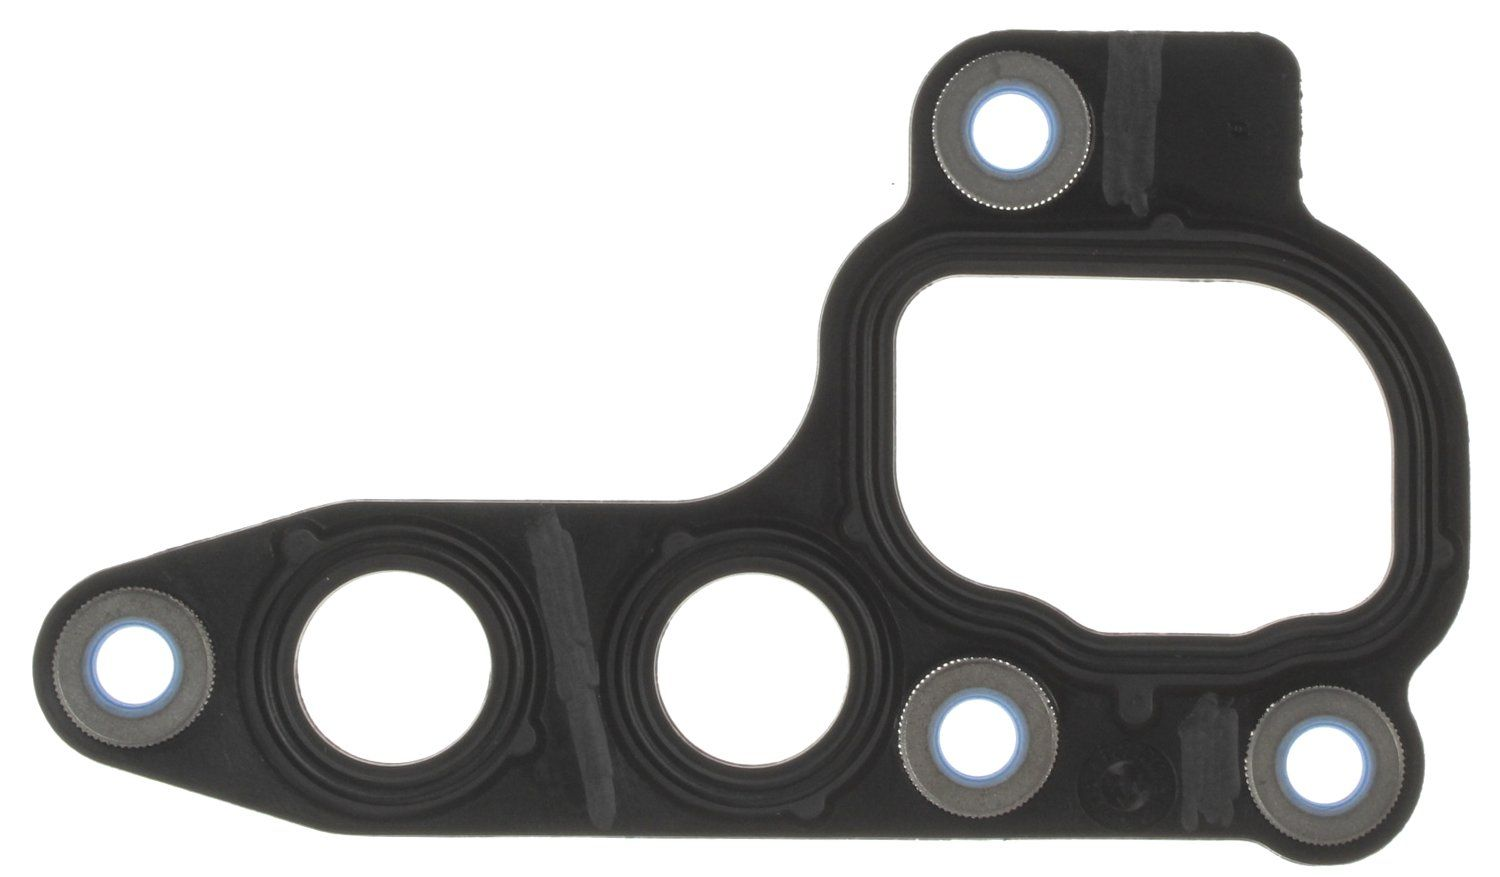 Ford F  Engine Oil Filter Adapter Gasket  L Victor Gaskets B Victo Tech